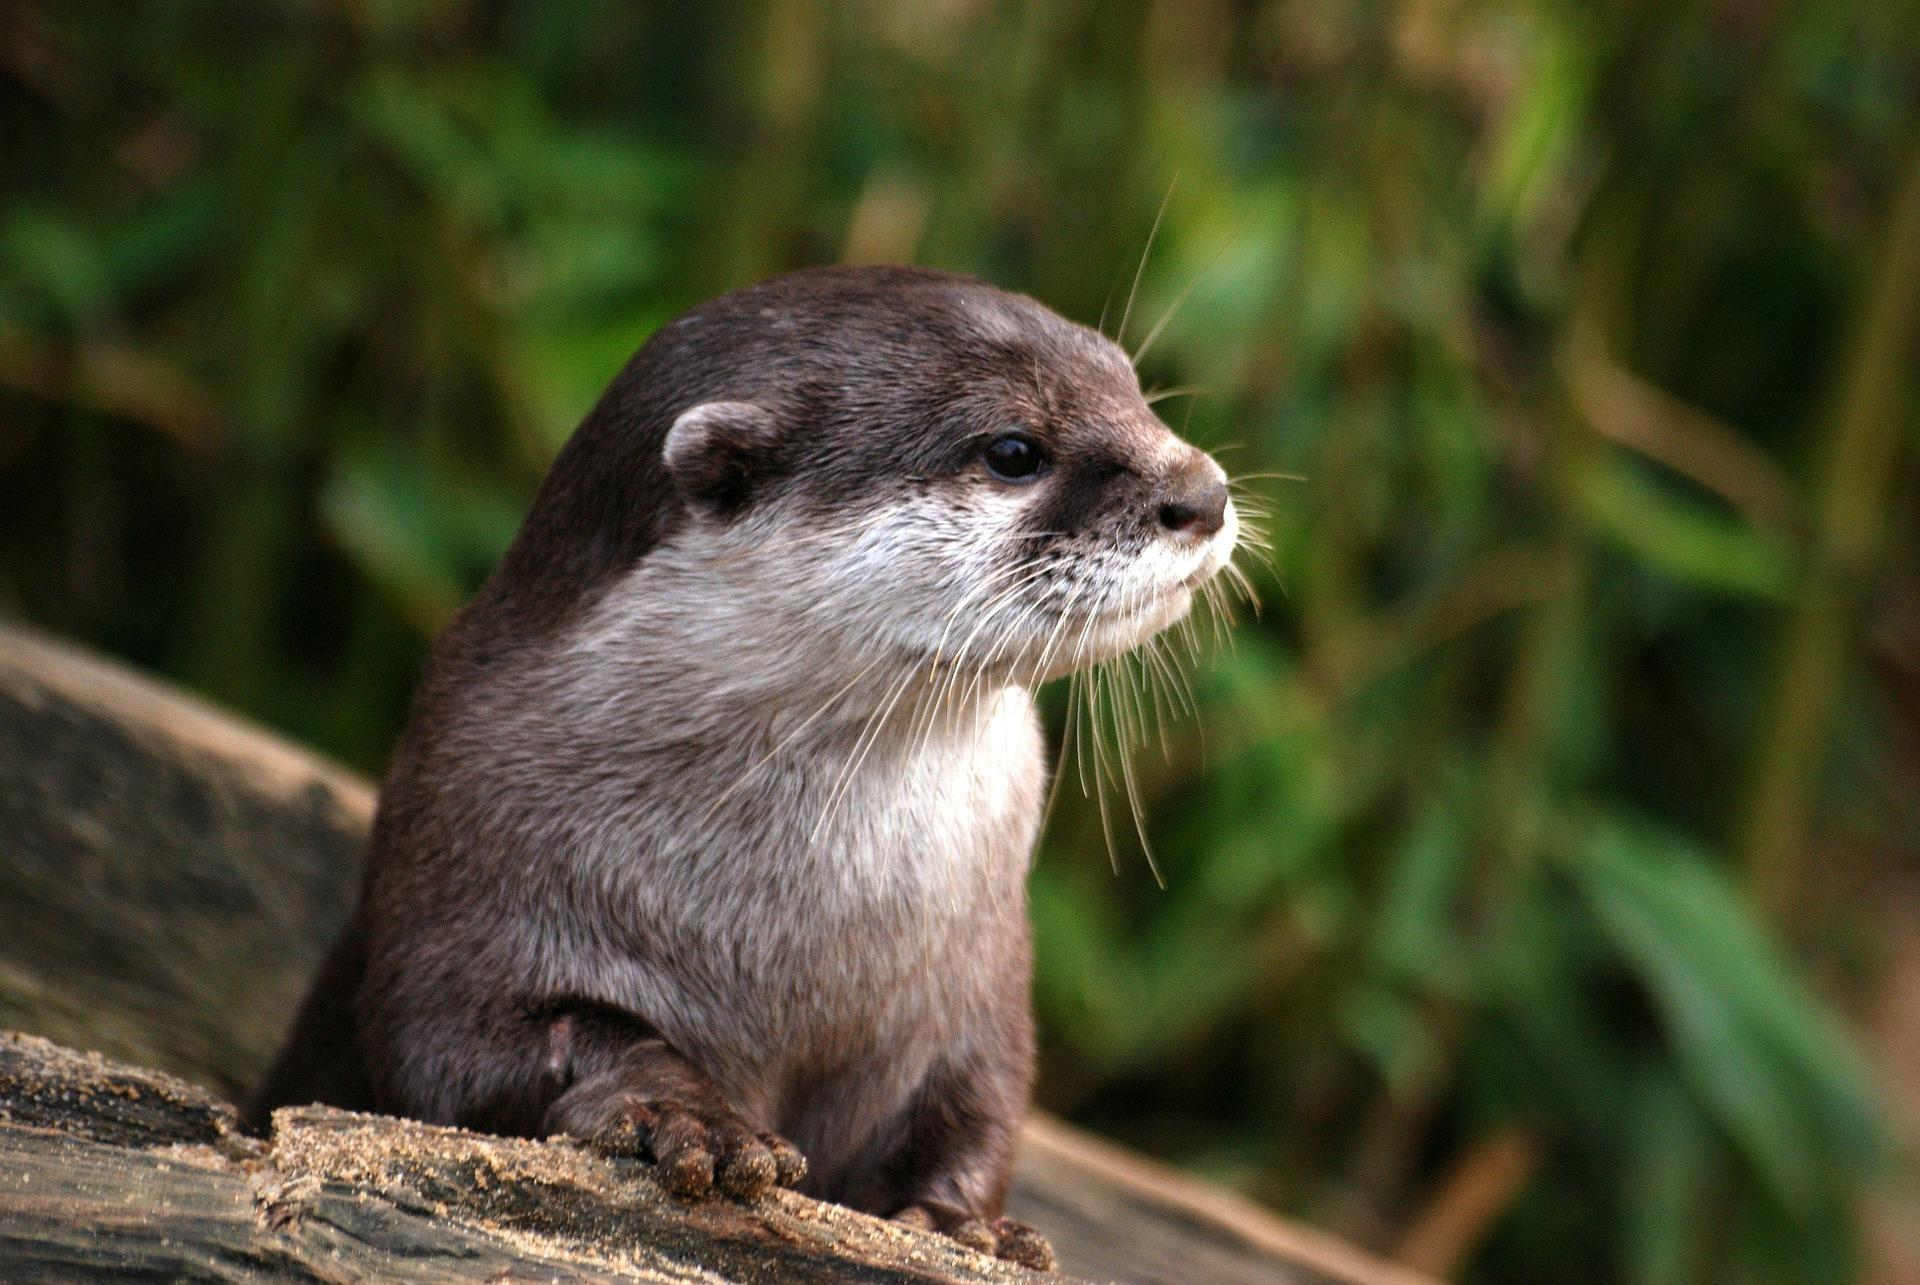 Otter Wallpaper Hd For Android Apk Download